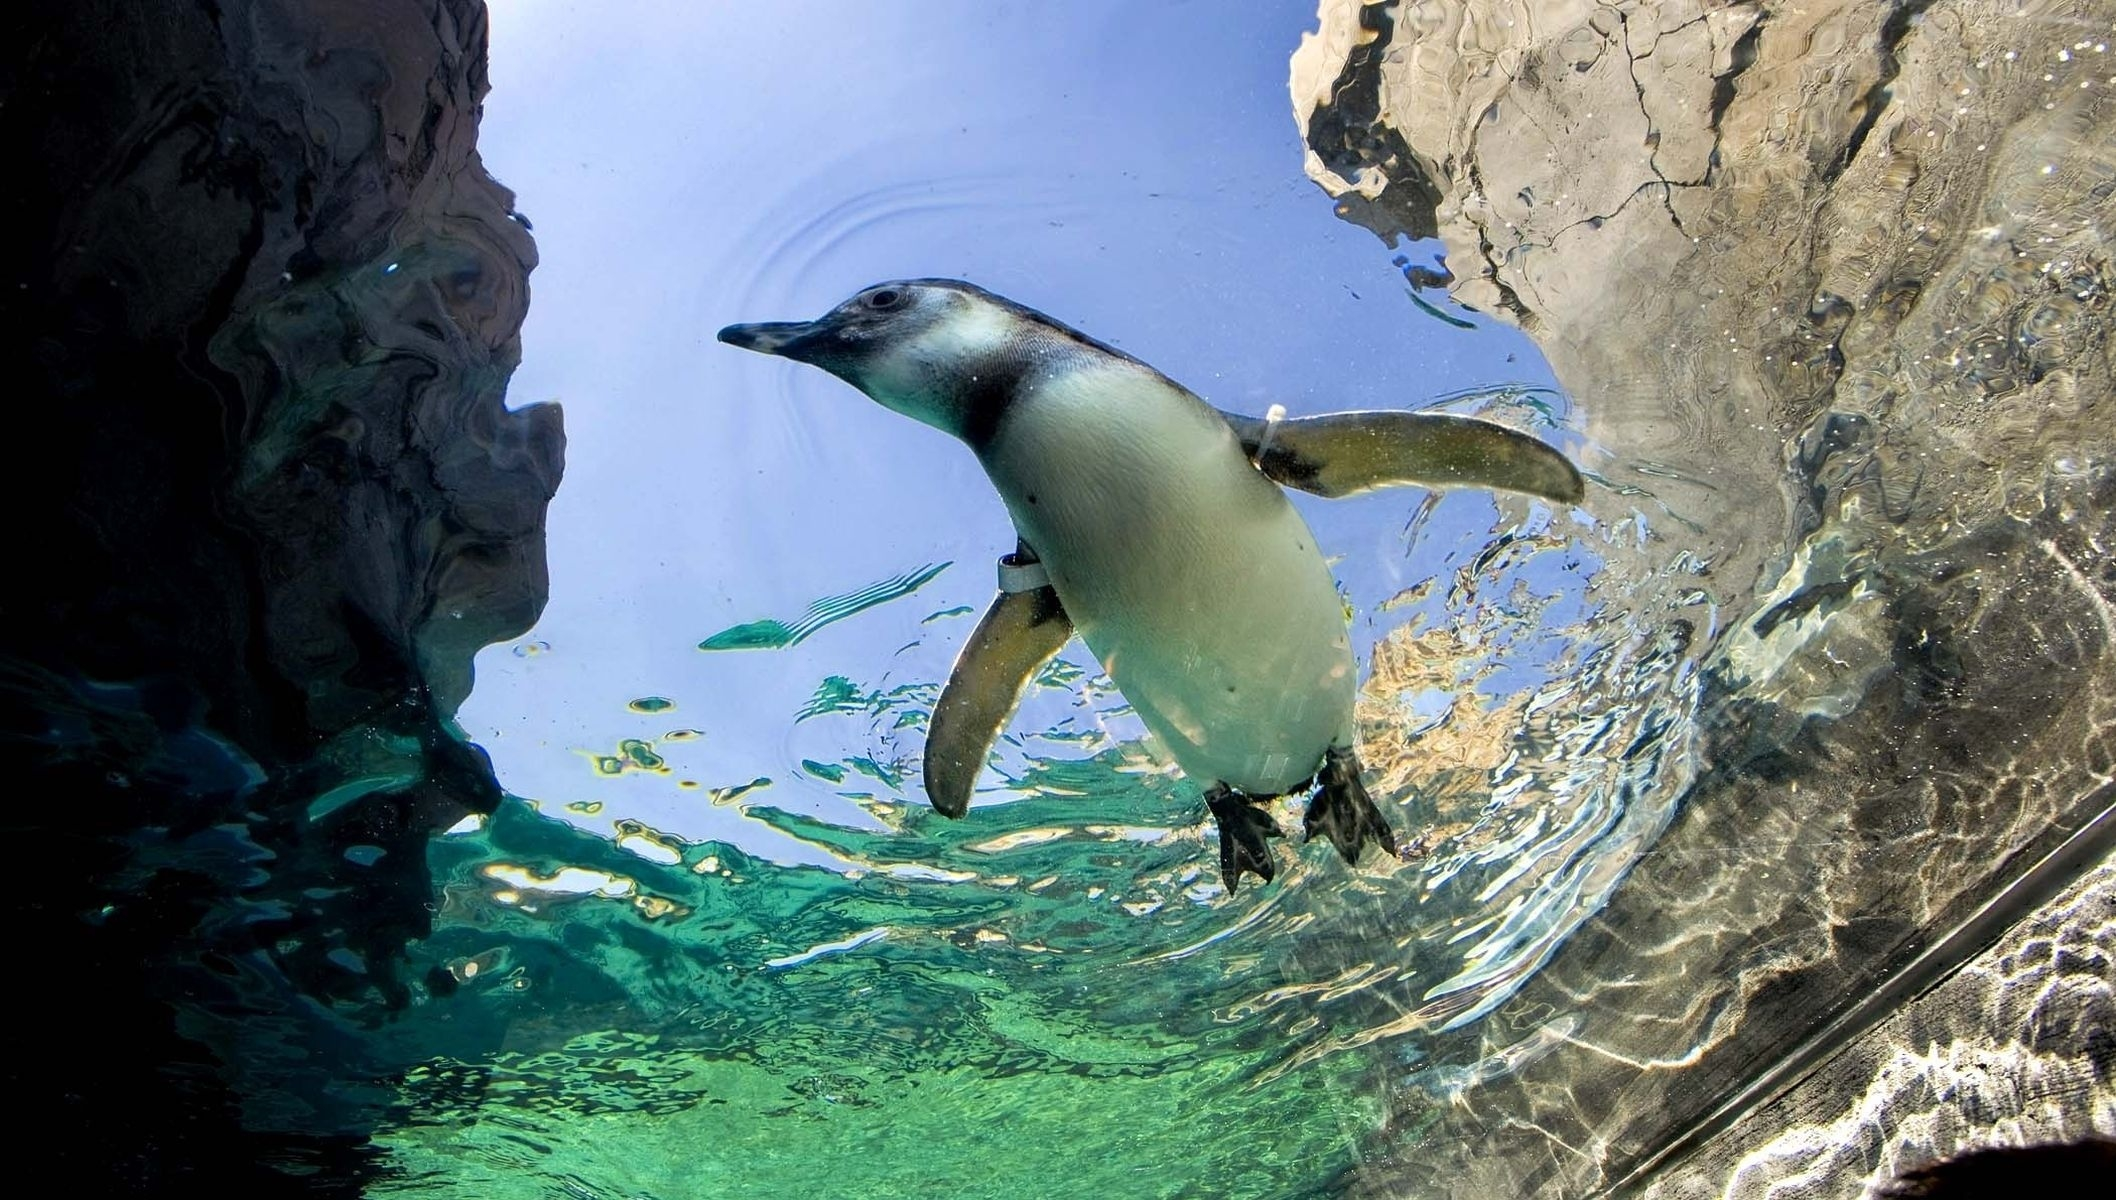 137083 download wallpaper Animals, Penguin, To Swim, Swim, Water, Stones screensavers and pictures for free